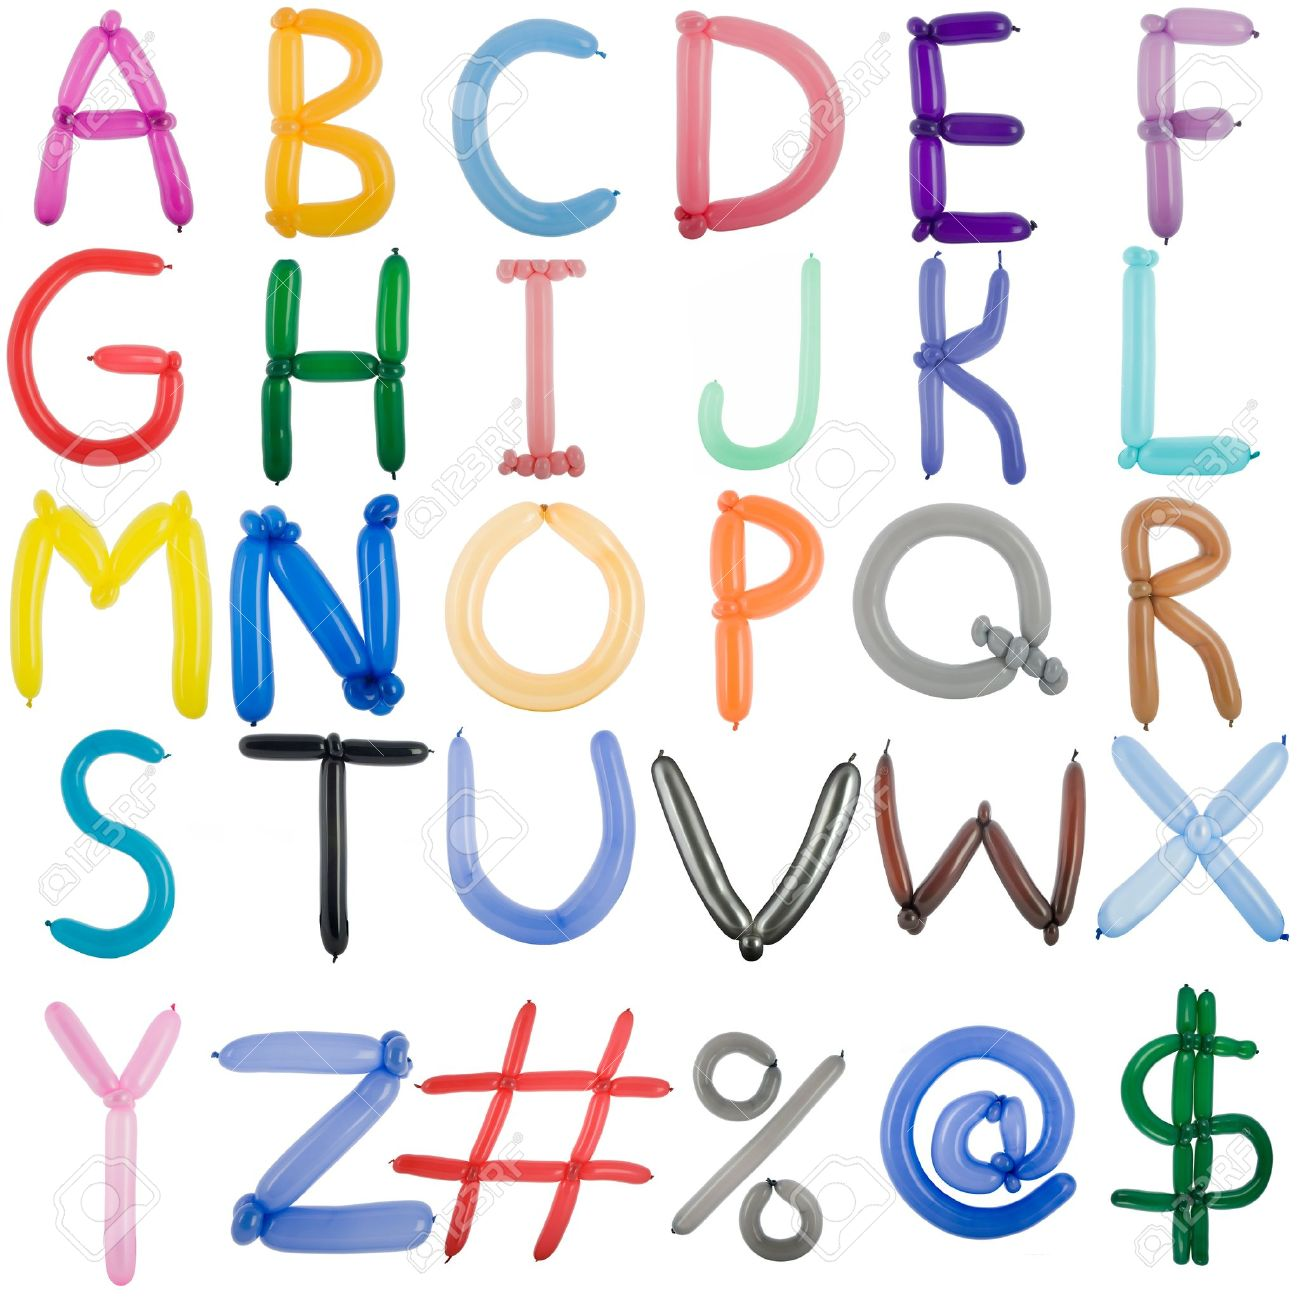 Twisted balloon fonts full set of upper case A,B,C,    and some symbols Stock Photo - 14860339